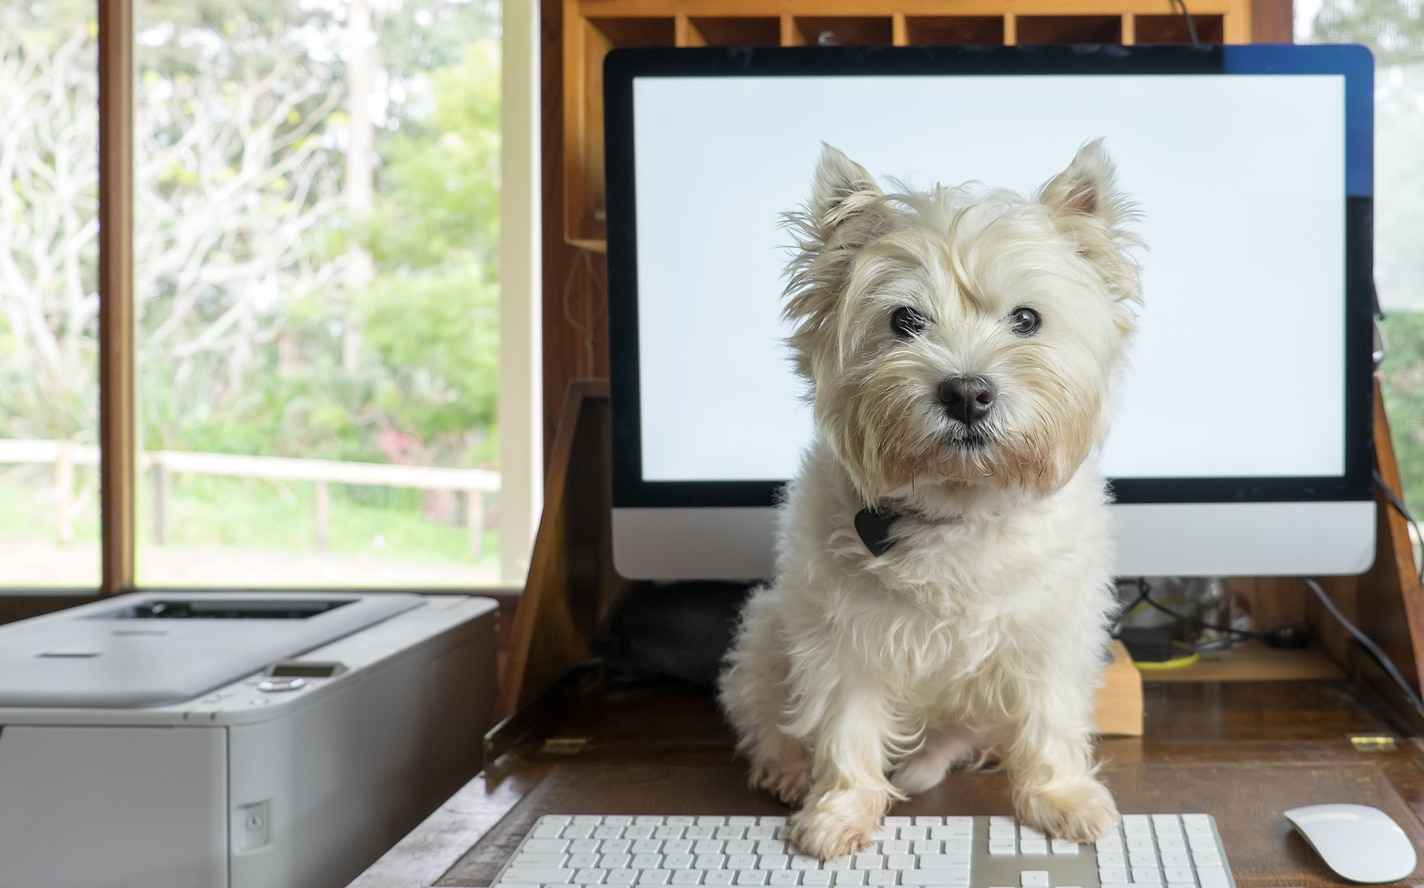 West highland white terrier on desk with computer in working from home office